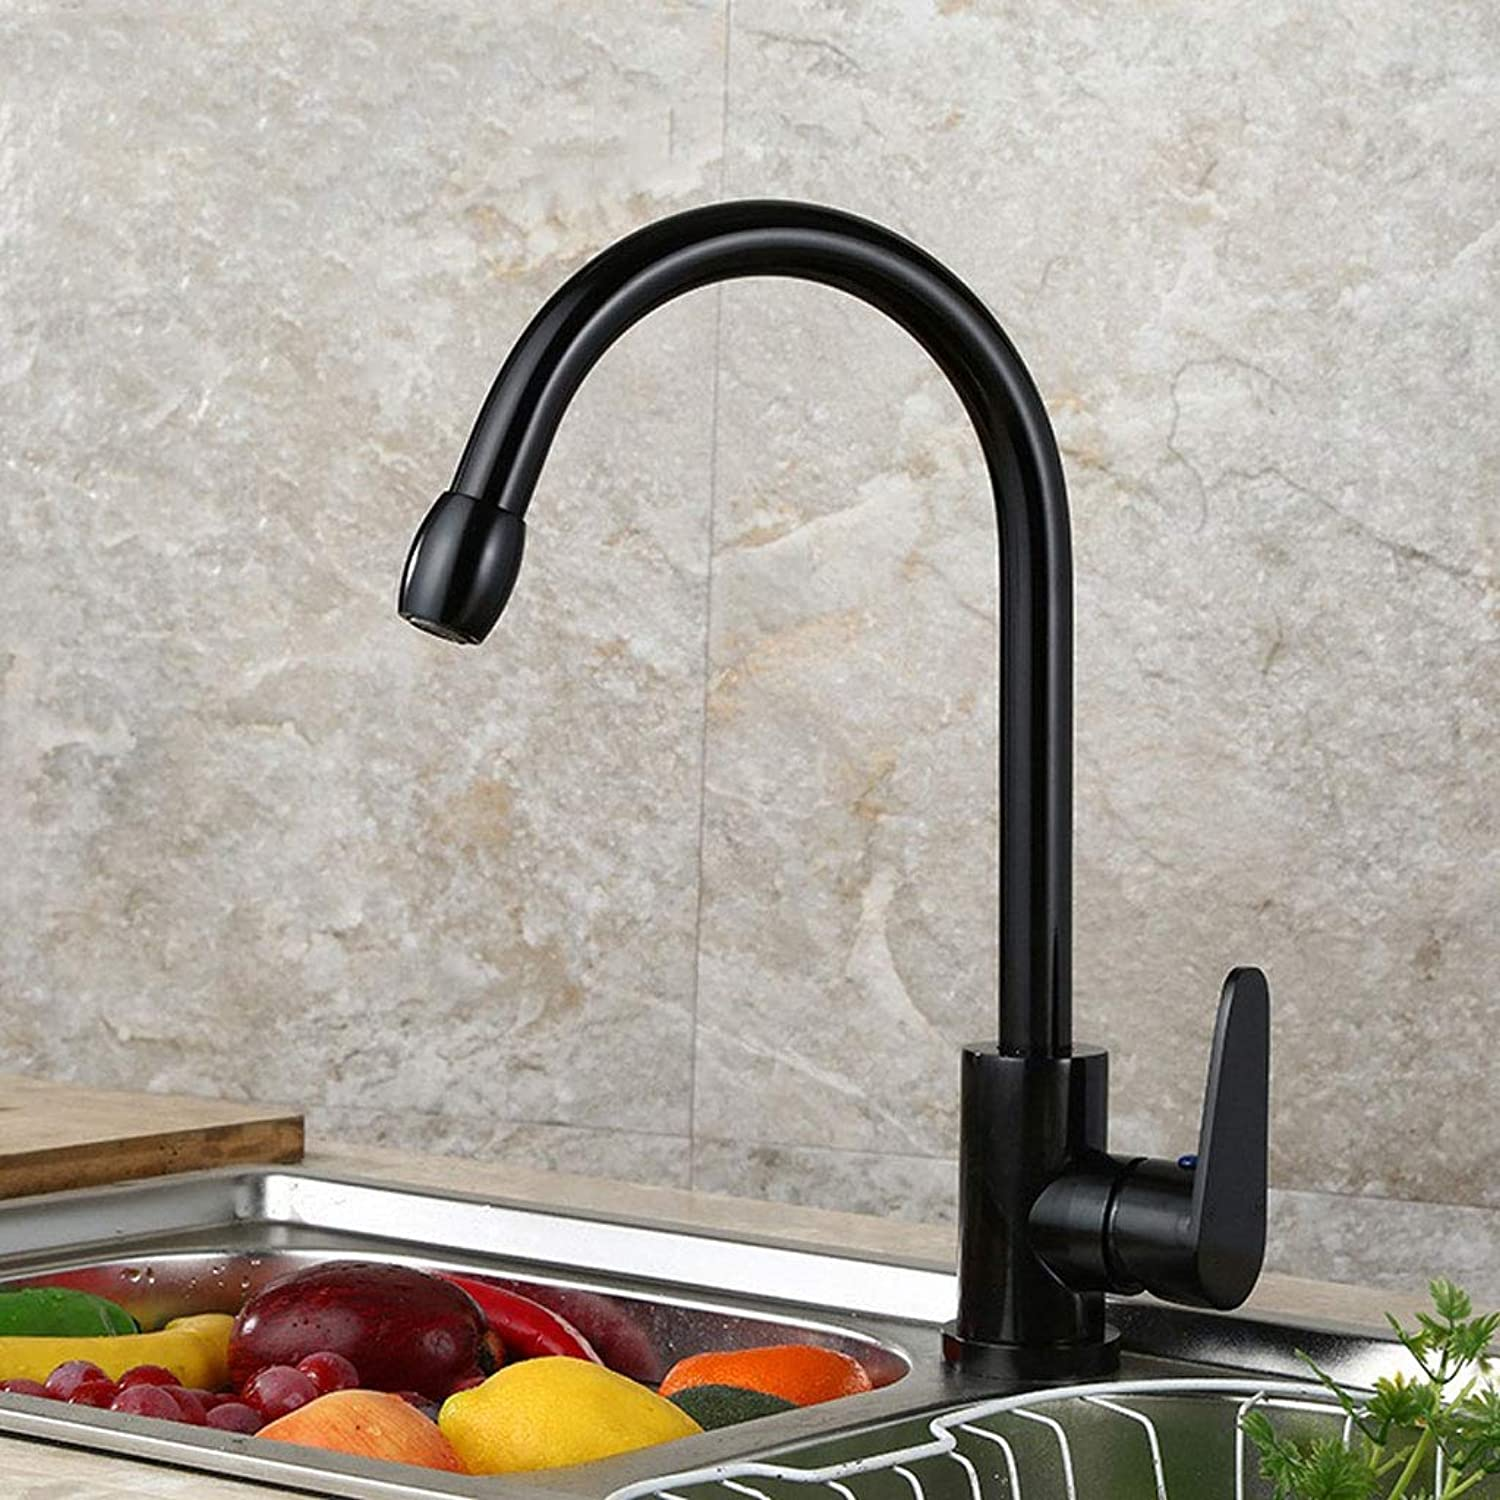 LXKY Space aluminum faucet - universal kitchen bathroom, hot and cold water tank mixer, black,B